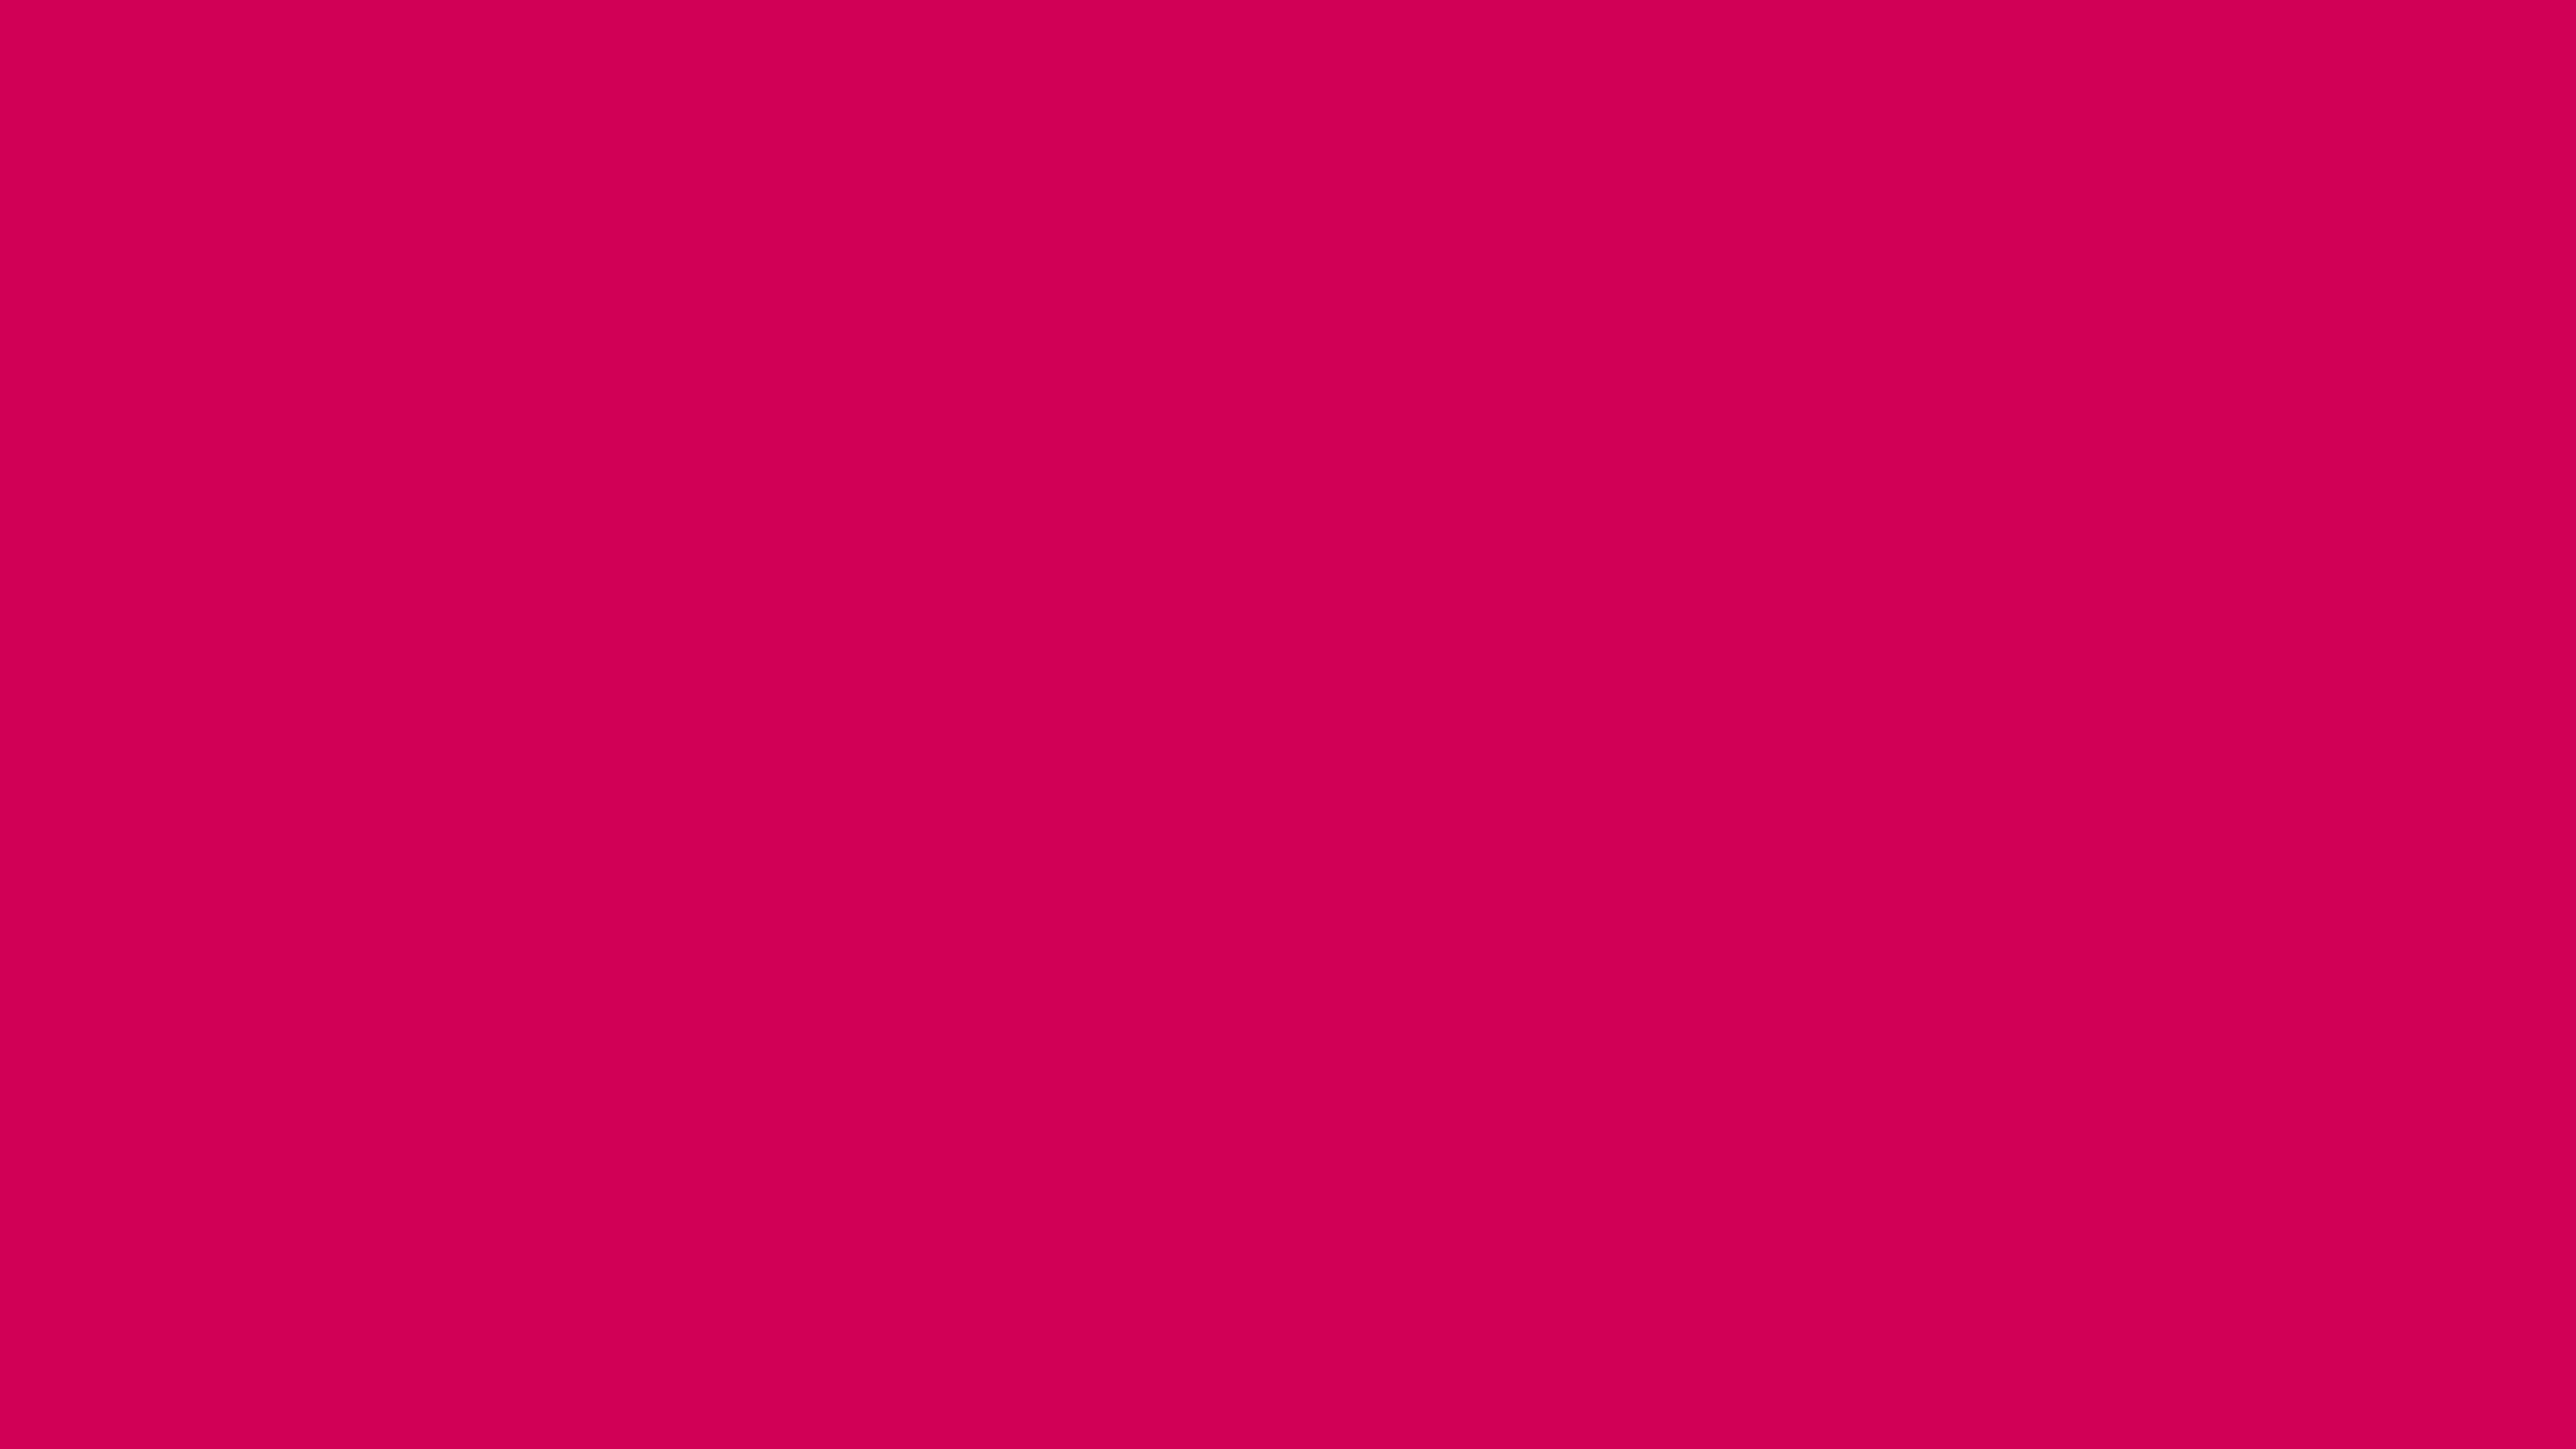 3840x2160 Rubine Red Solid Color Background